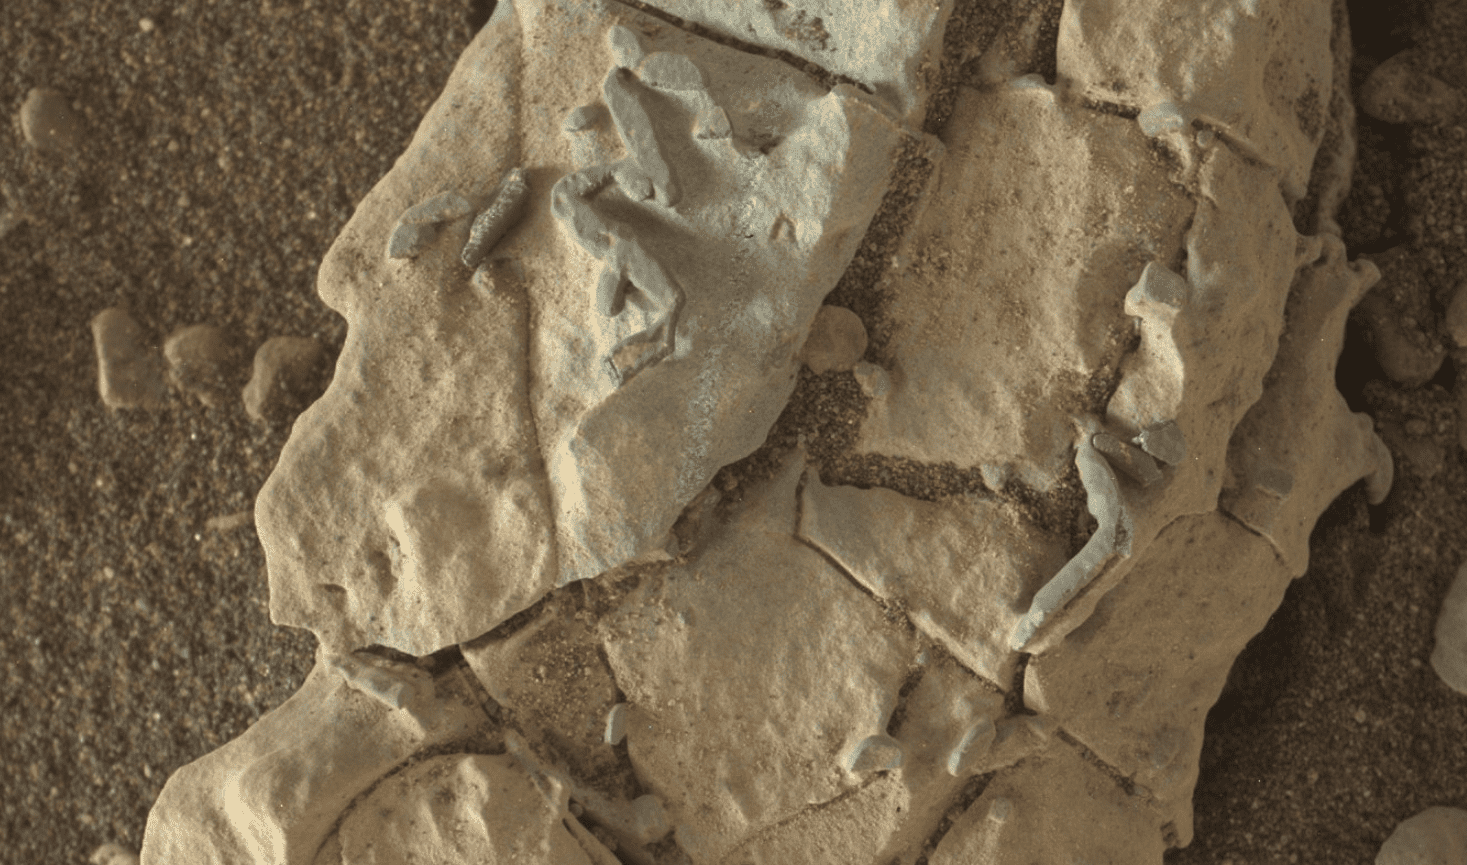 NASA Mars Rover's Images Similar To Trace Fossils: Scientists